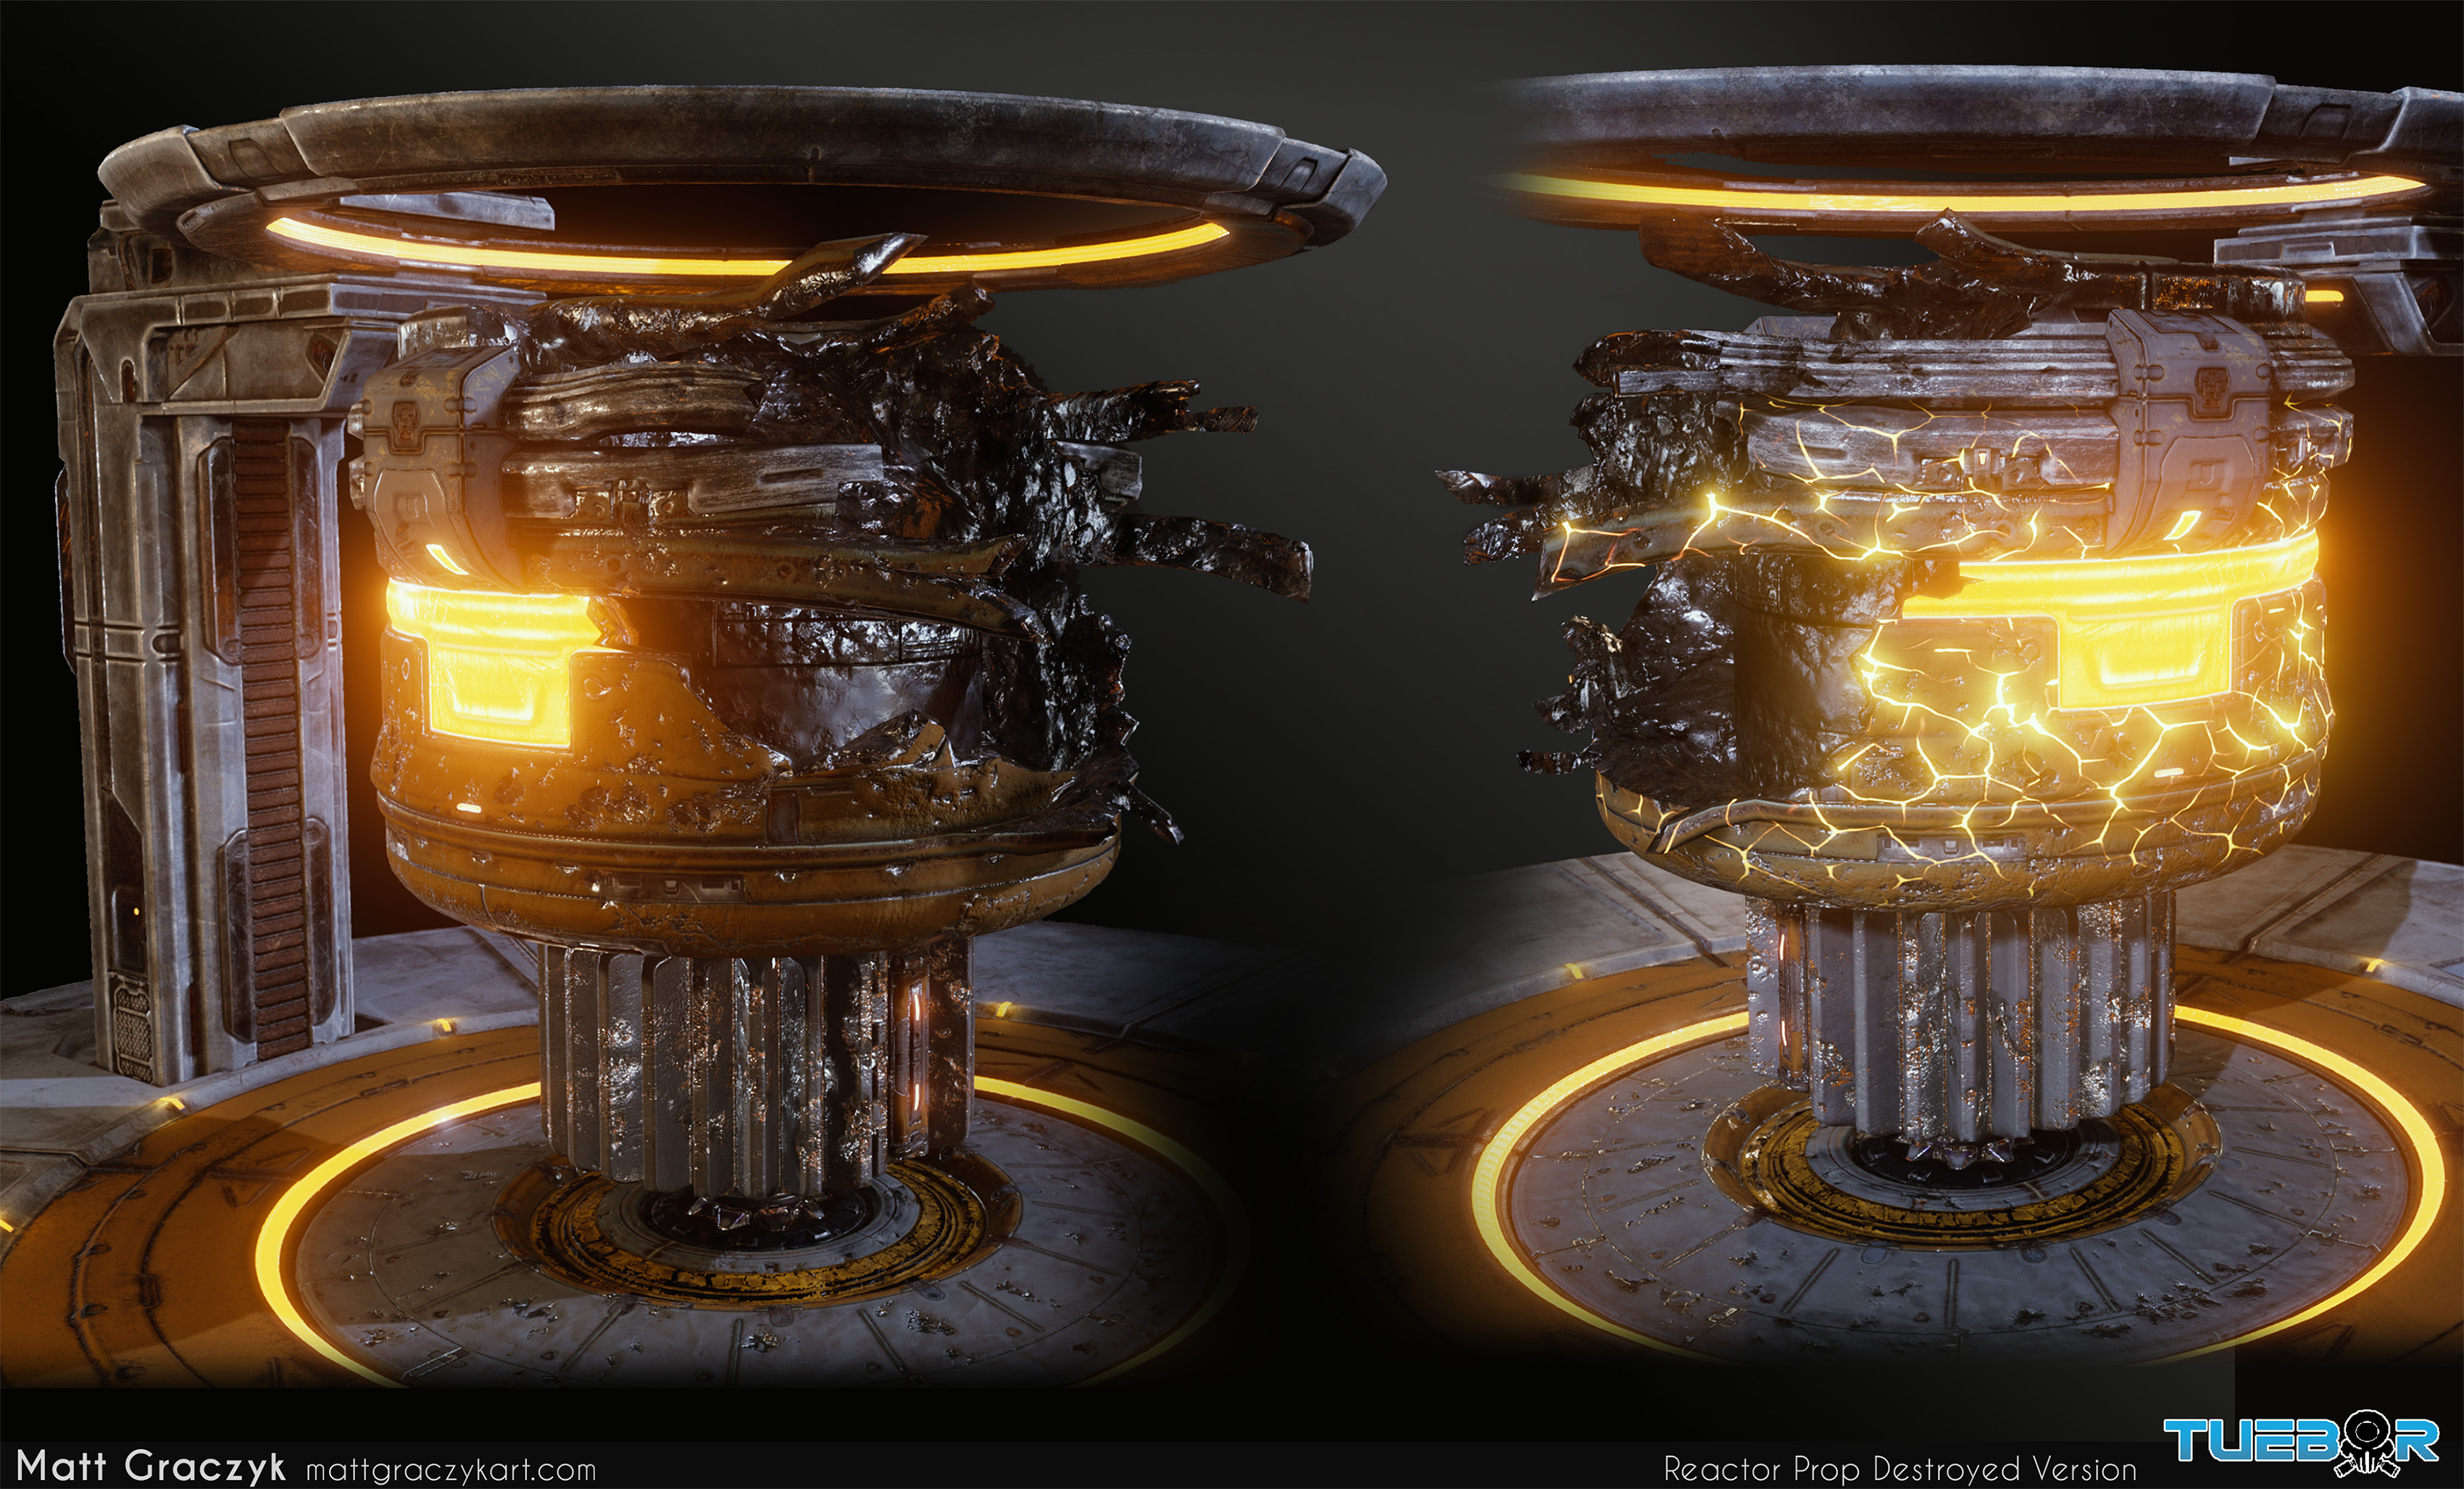 I created a destroyed version of the reactor from the normal version using Ndo to overlay damage and vertex blending of a charred metal material.